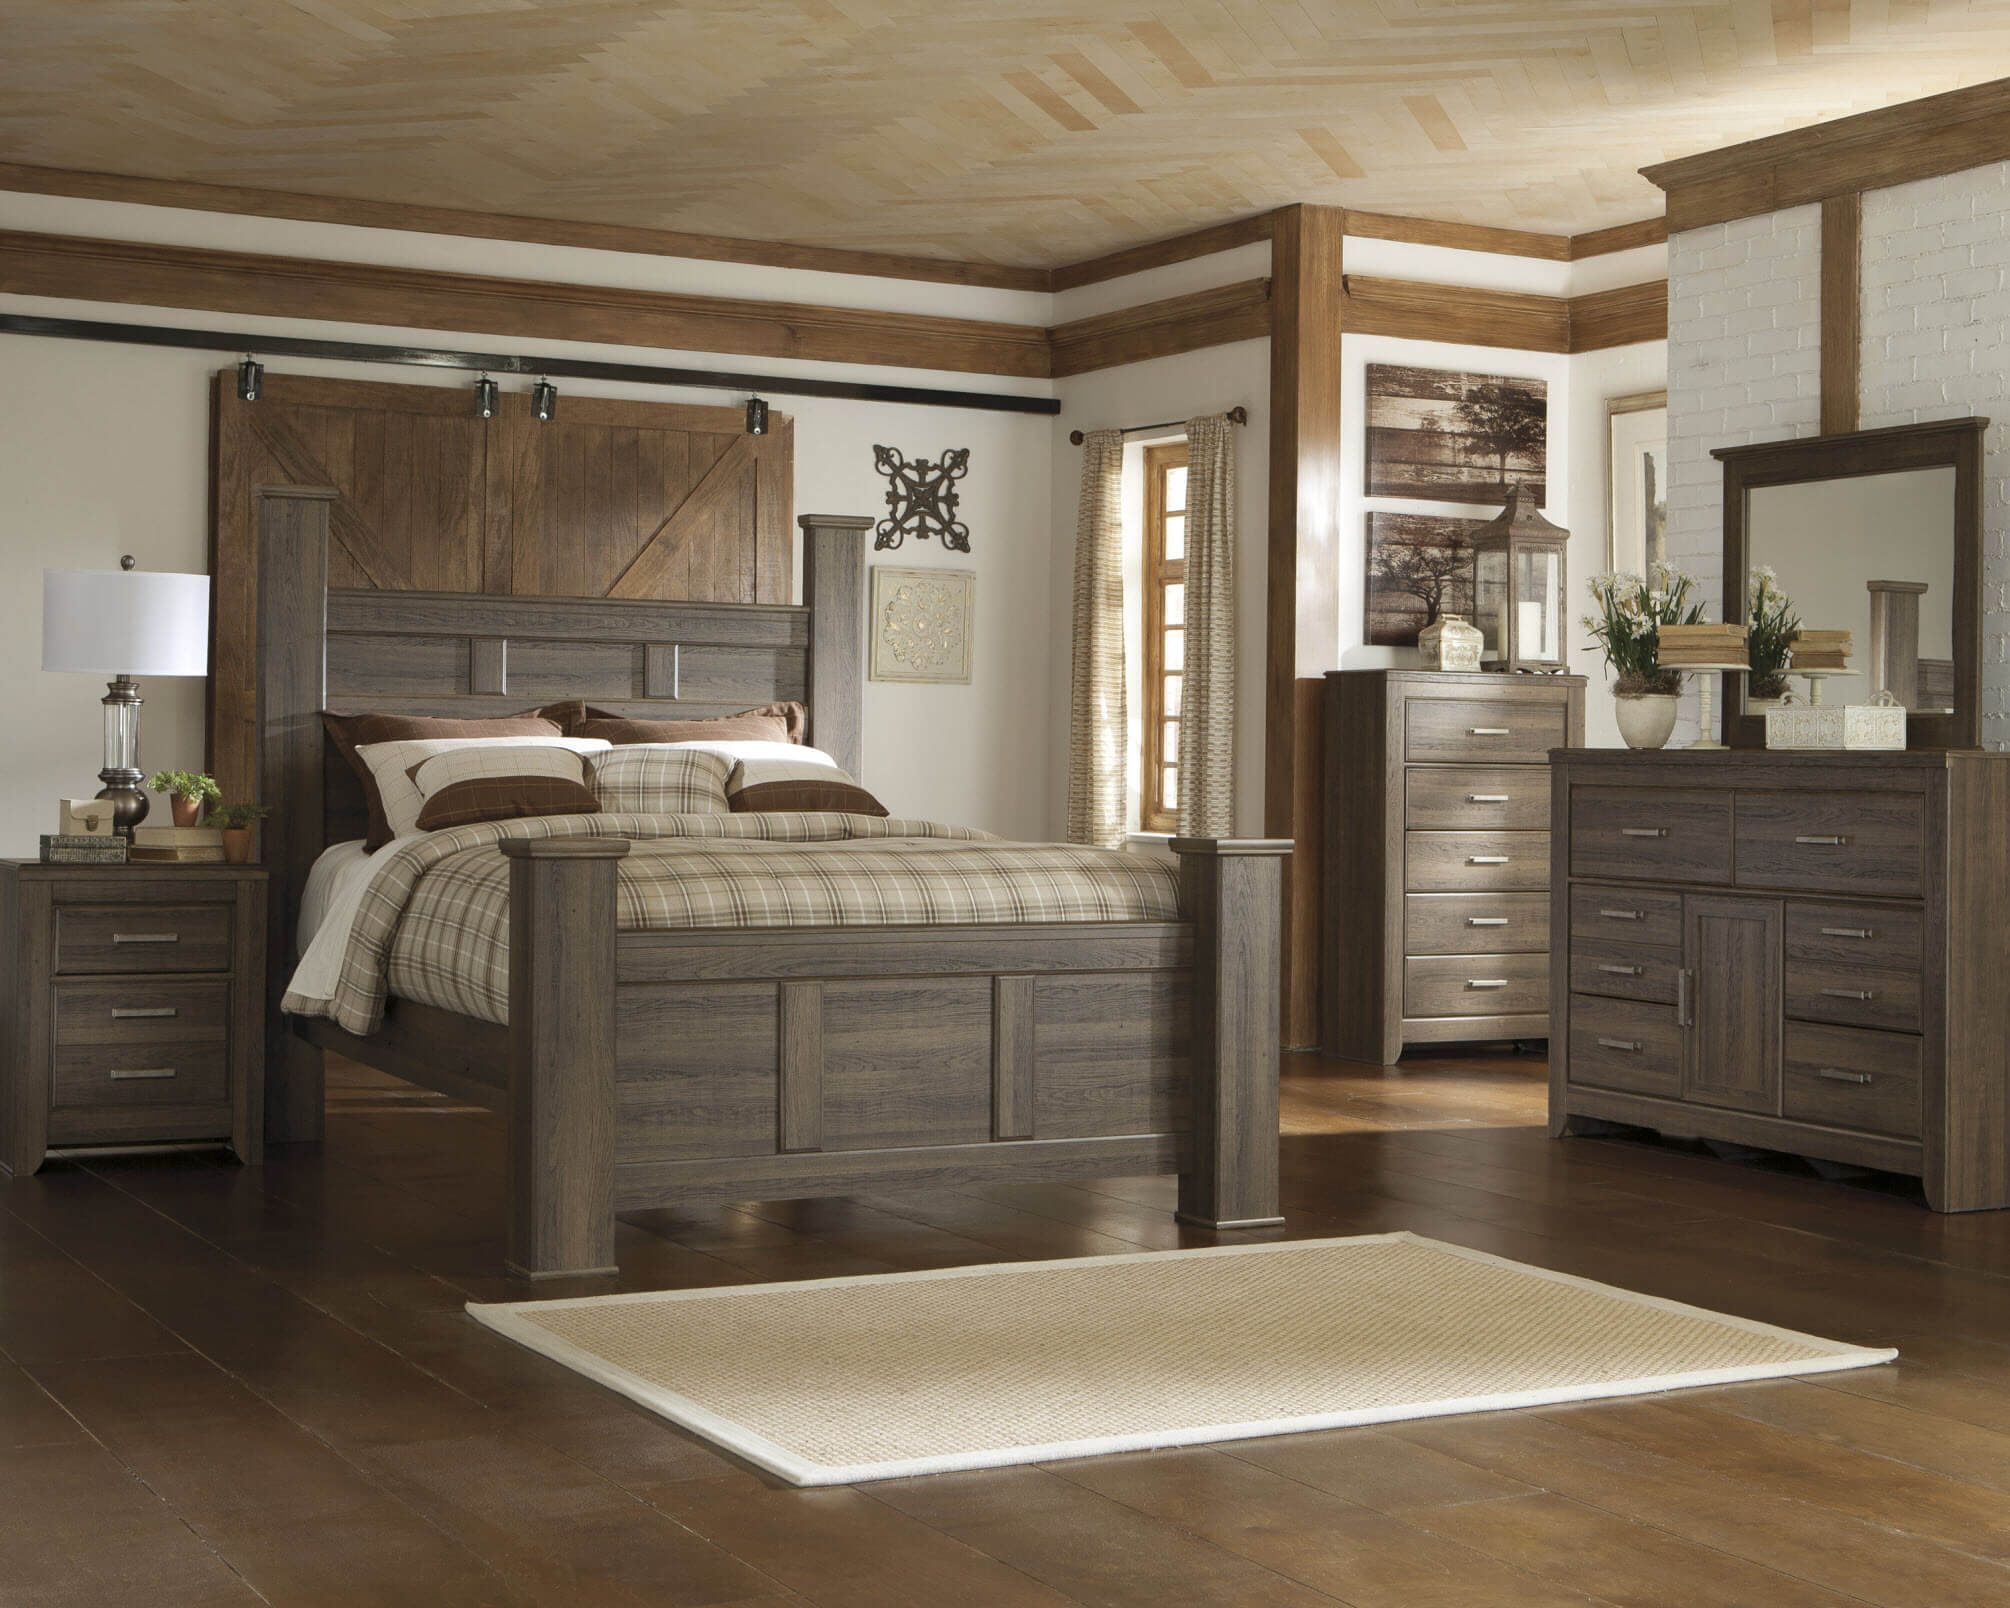 Juarano Ashley Bedroom Set | Bedroom Furniture Sets